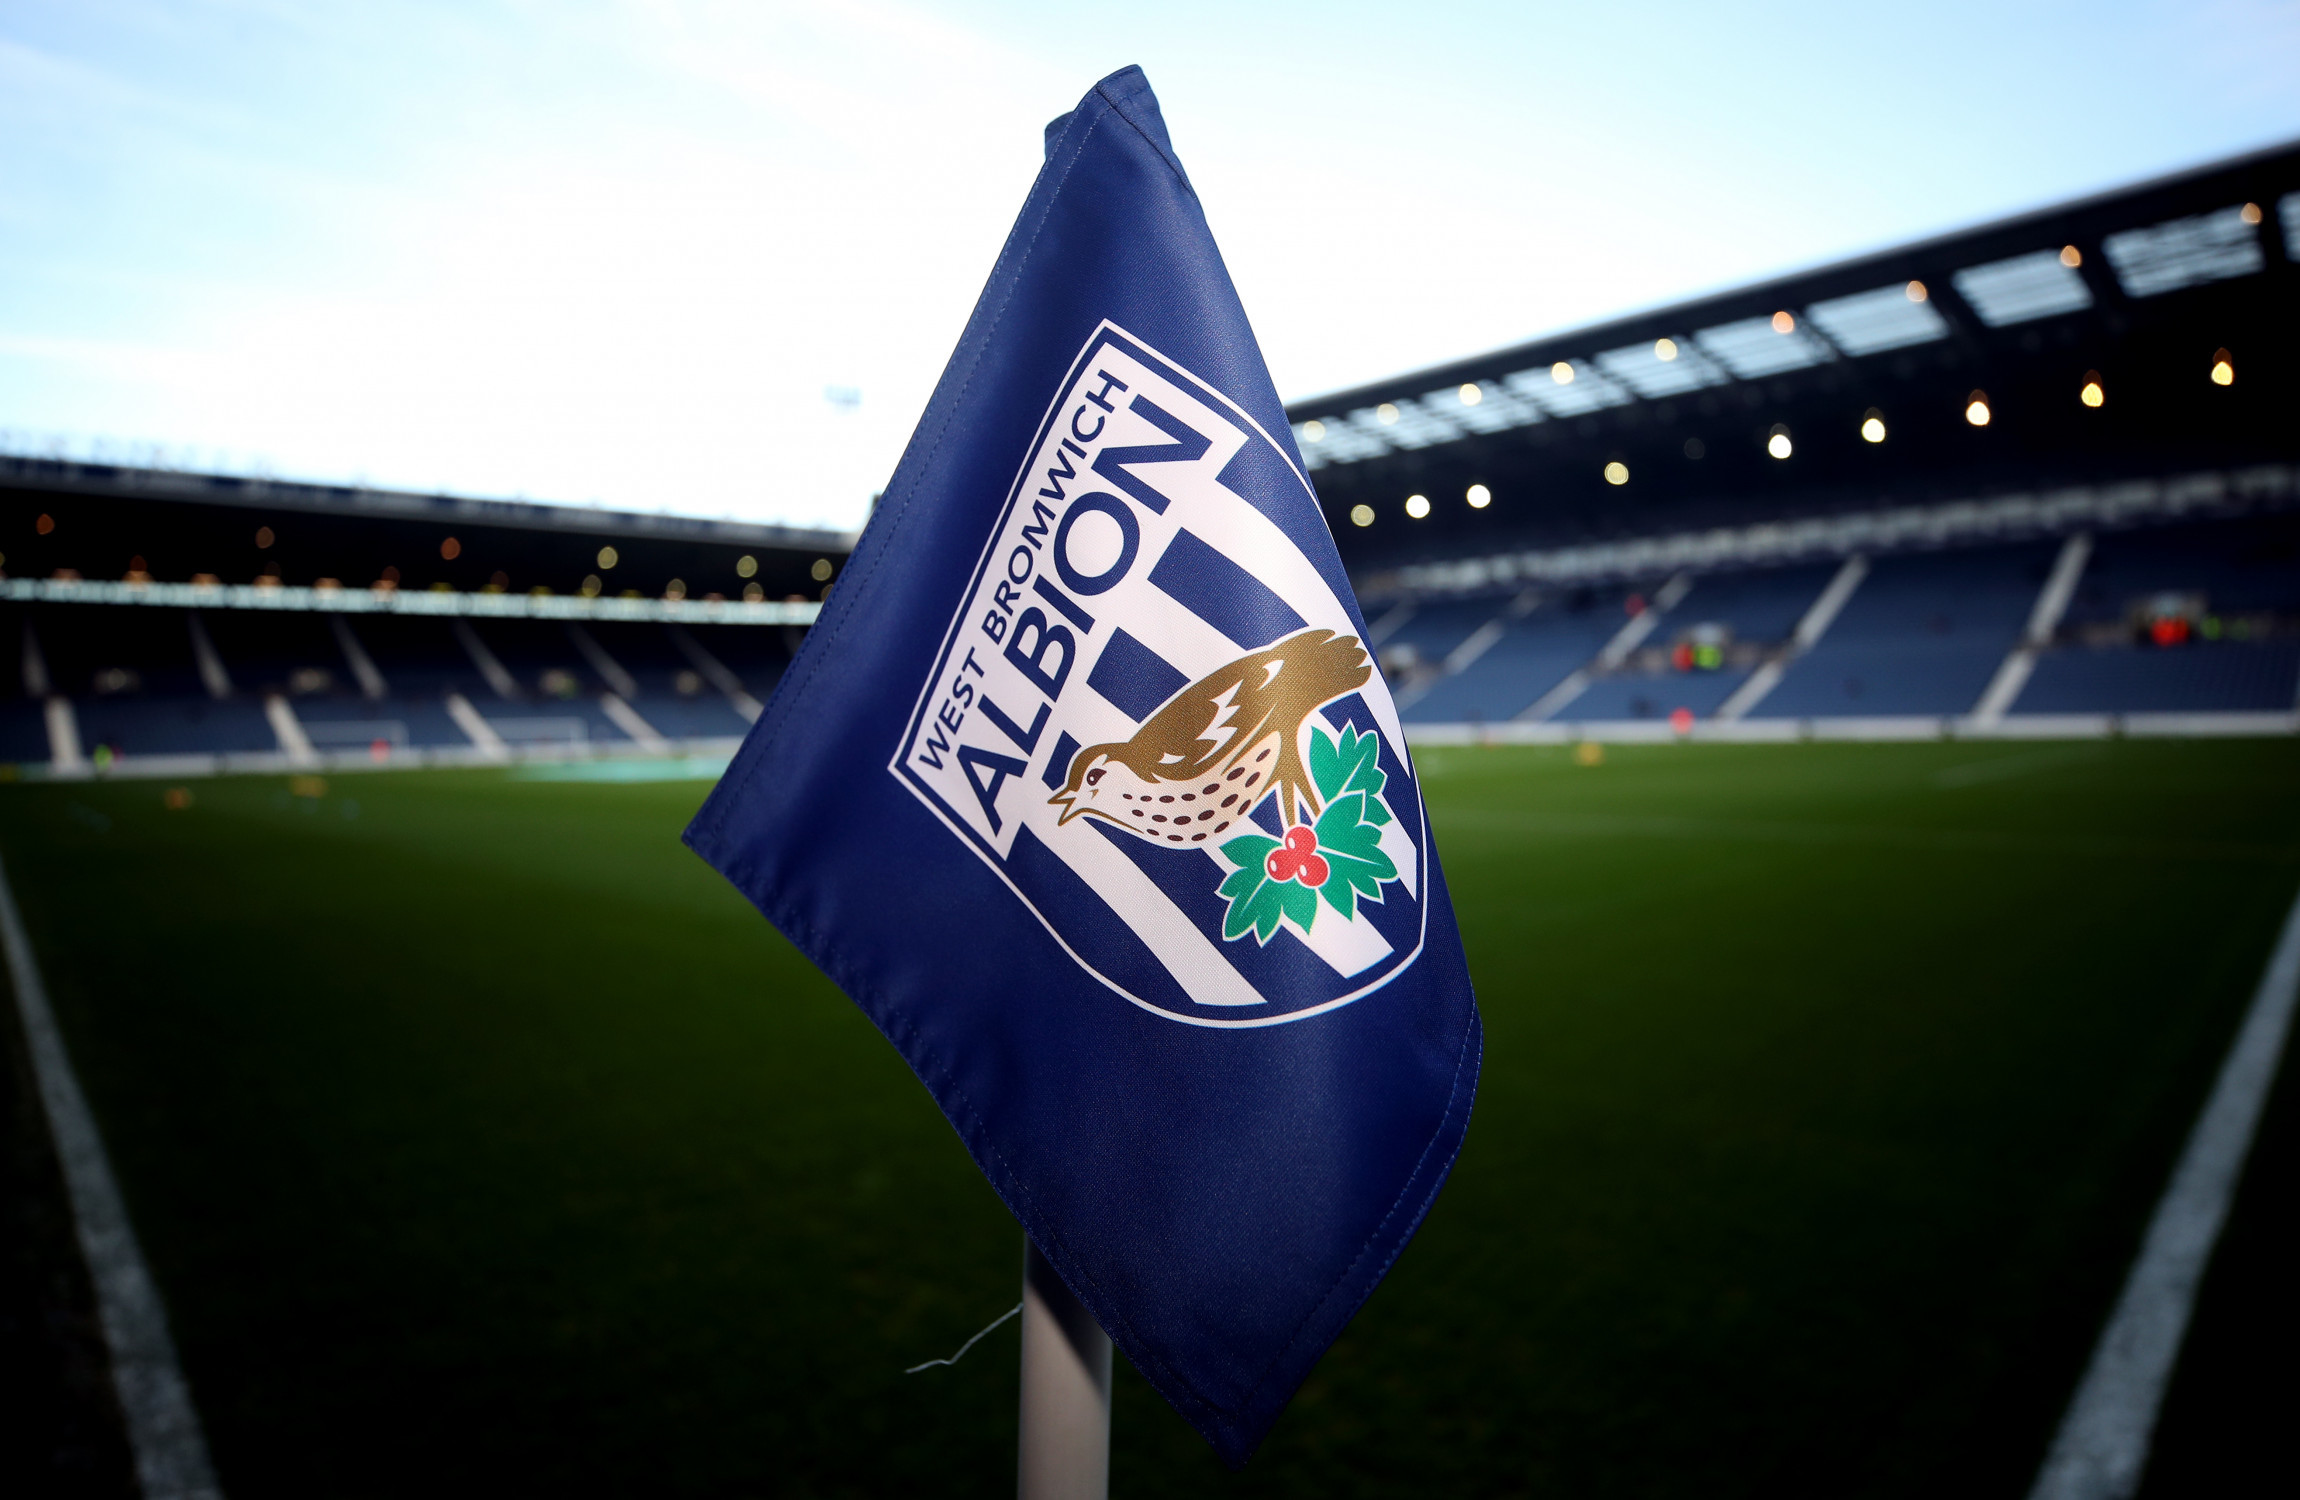 West Brom footballers 'stole a taxi' in Barcelona